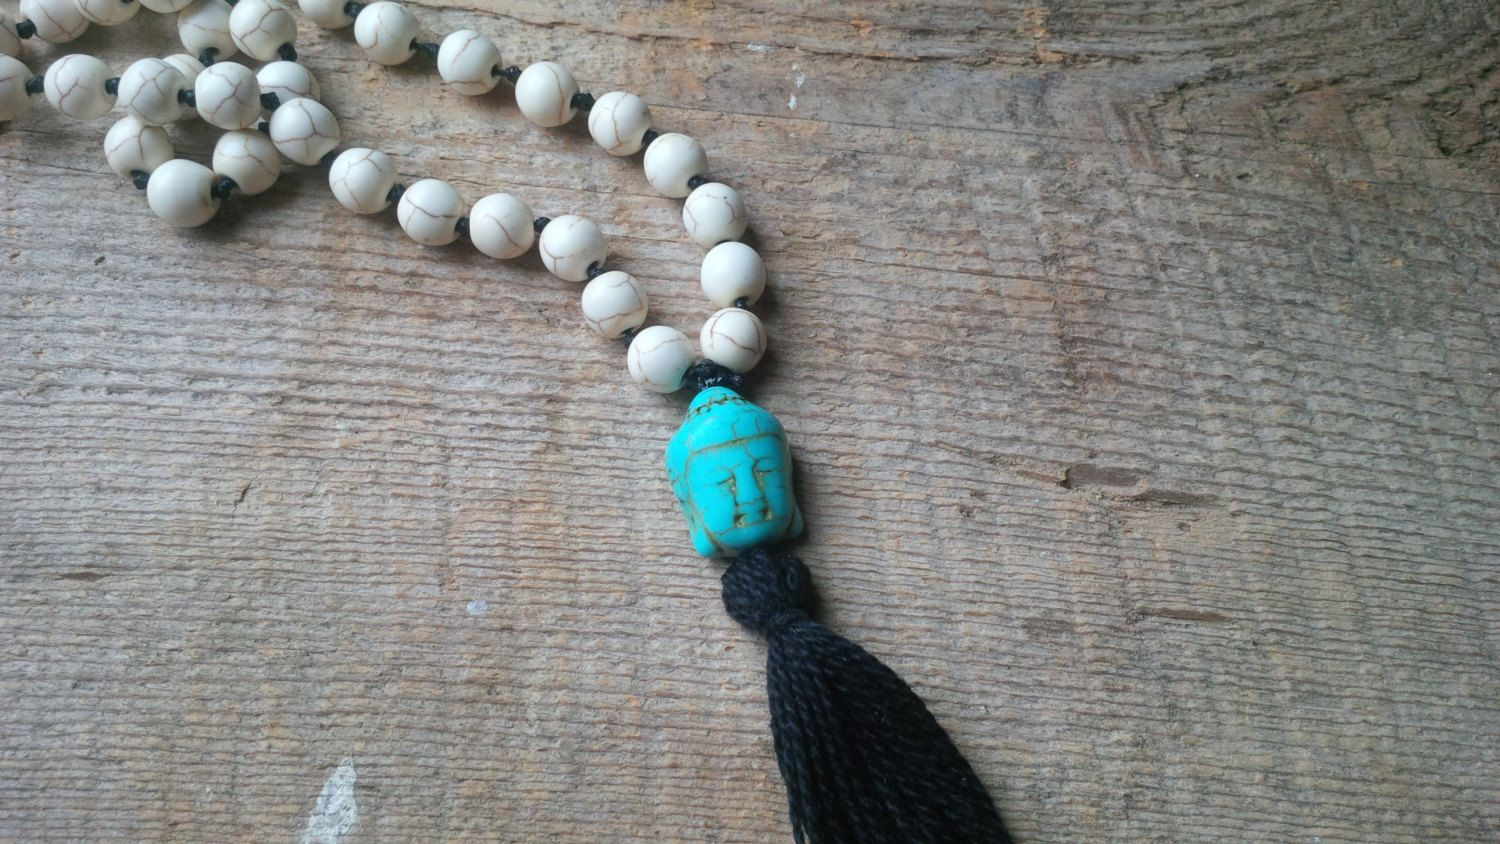 108 Mala Bead Necklace, Buddha Necklace, Beaded Necklace, Mala, Yoga Necklacce, Skullznbeadz Necklace by SkullzNBeadz on Etsy